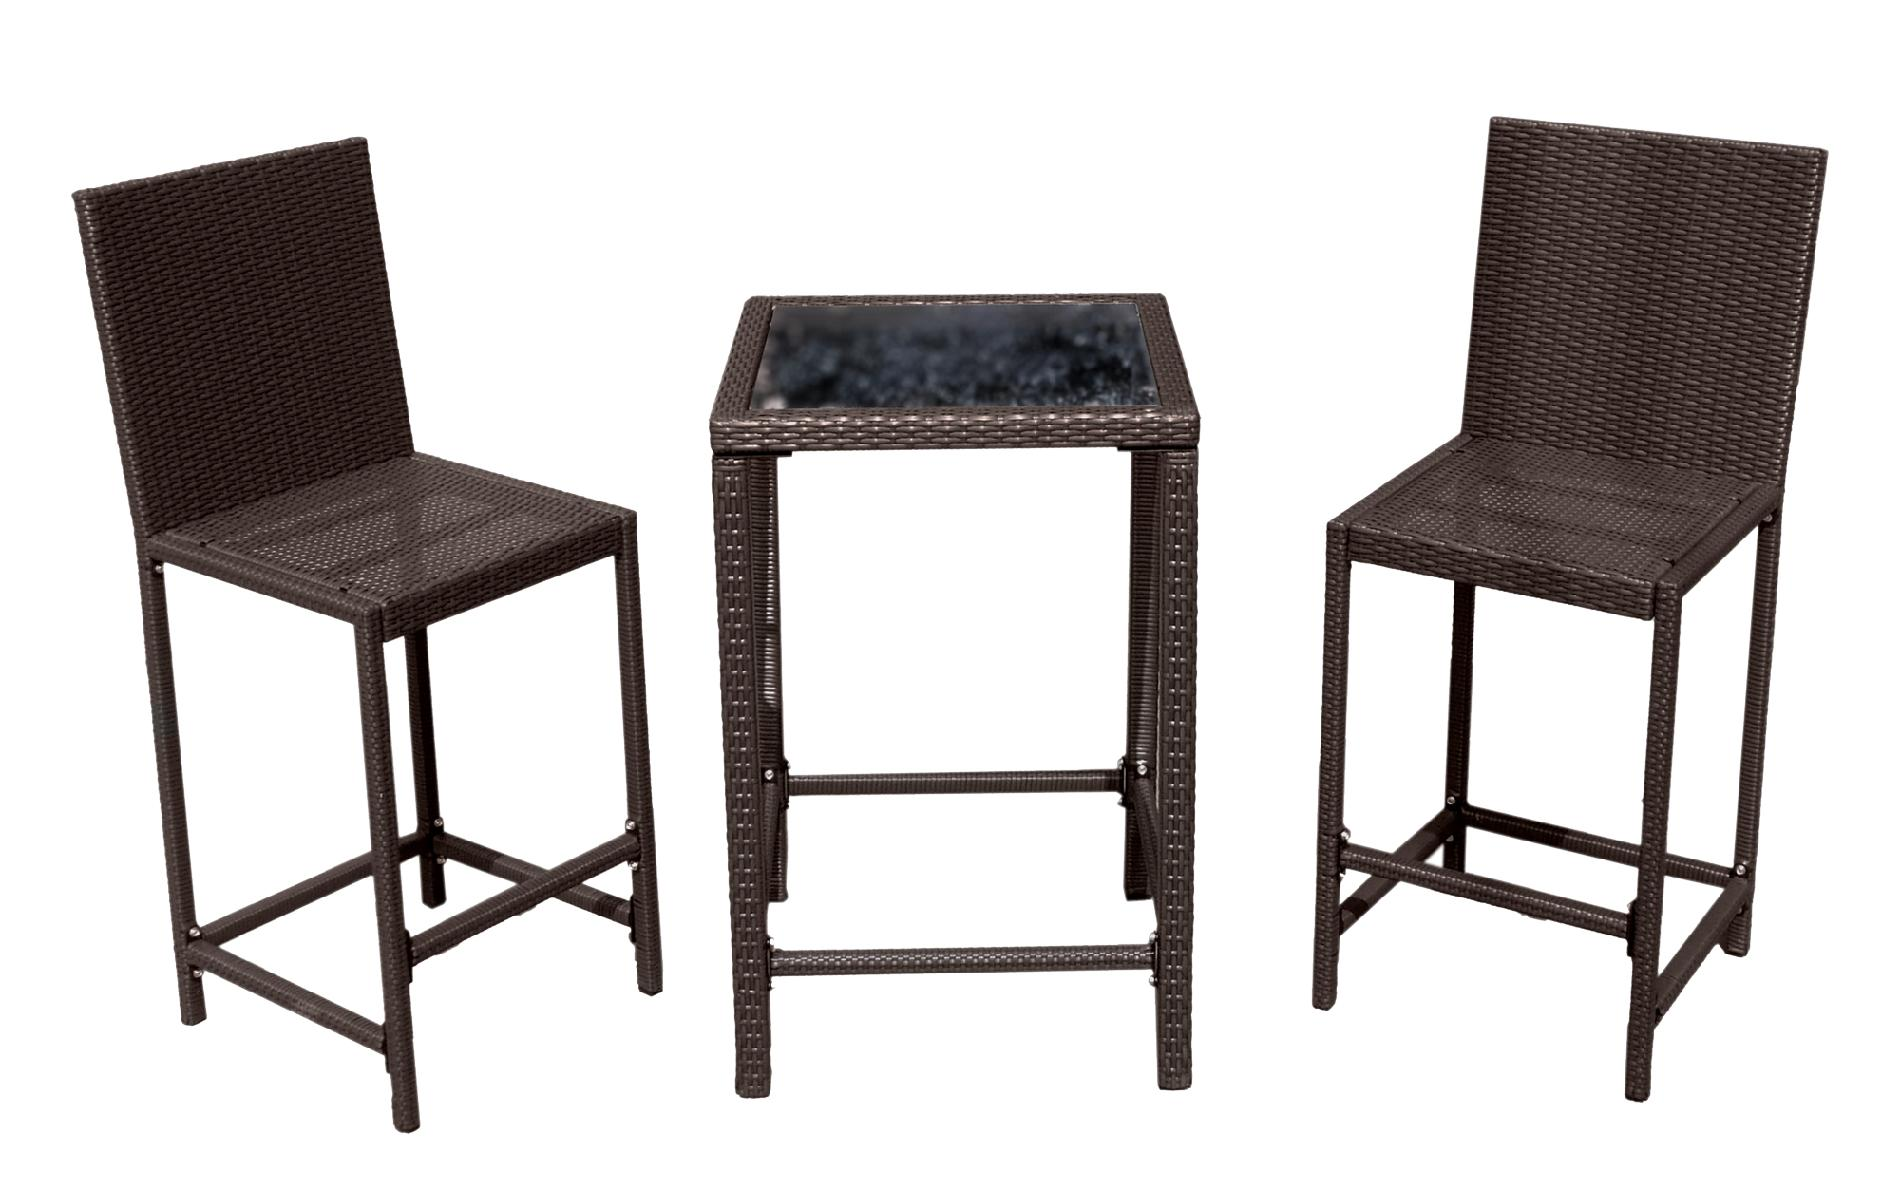 Hiland  Santa Ana 3-piece Wicker Patio